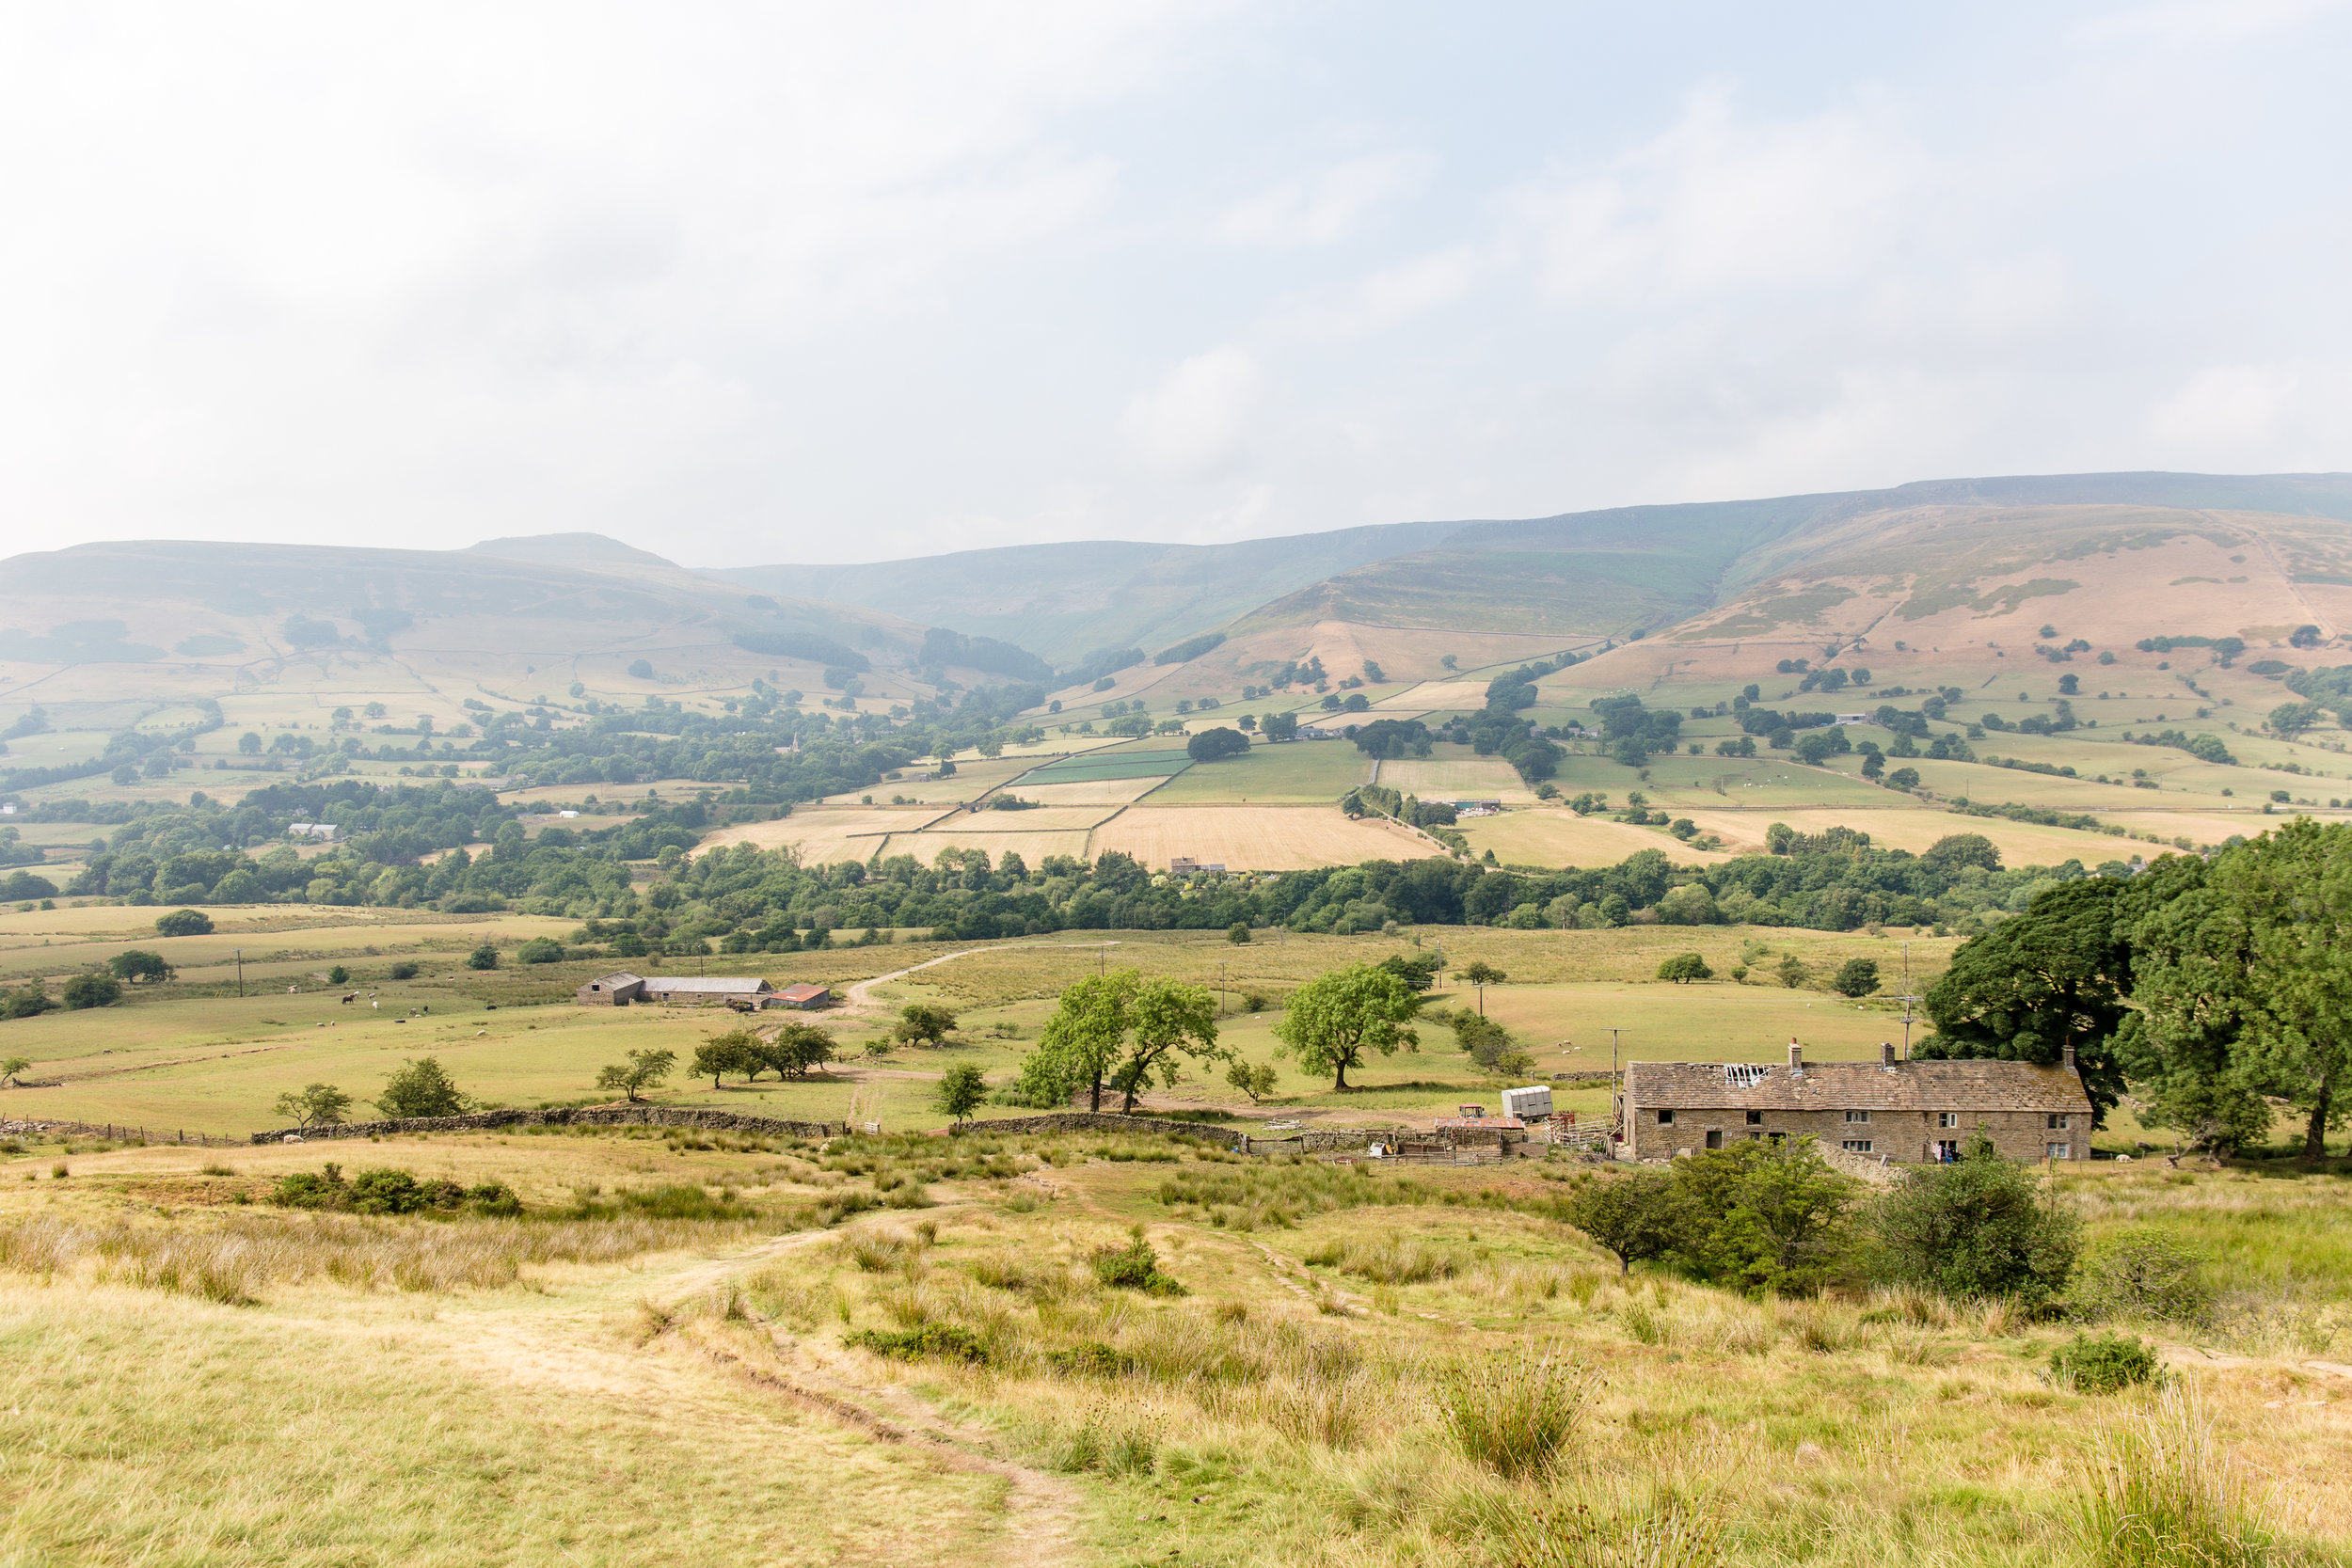 Looking across to Kinder Scout as the path begins to ascend